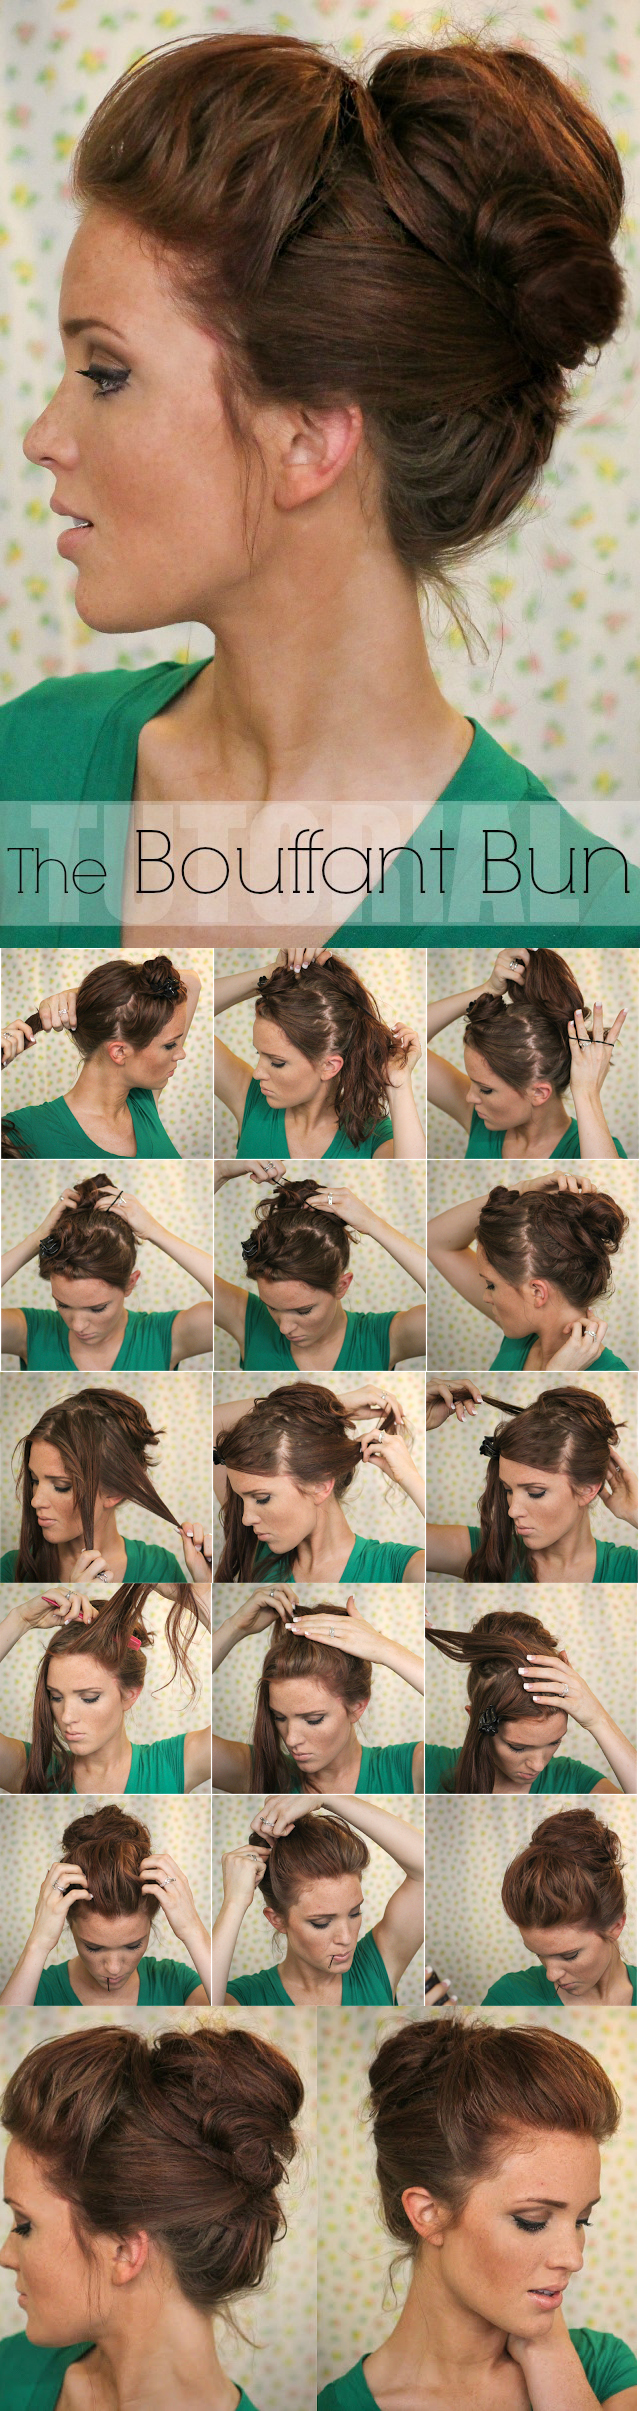 Incredible 13 Rather Simple Bun Hairstyles Tutorials For 2014 Pretty Designs Hairstyle Inspiration Daily Dogsangcom